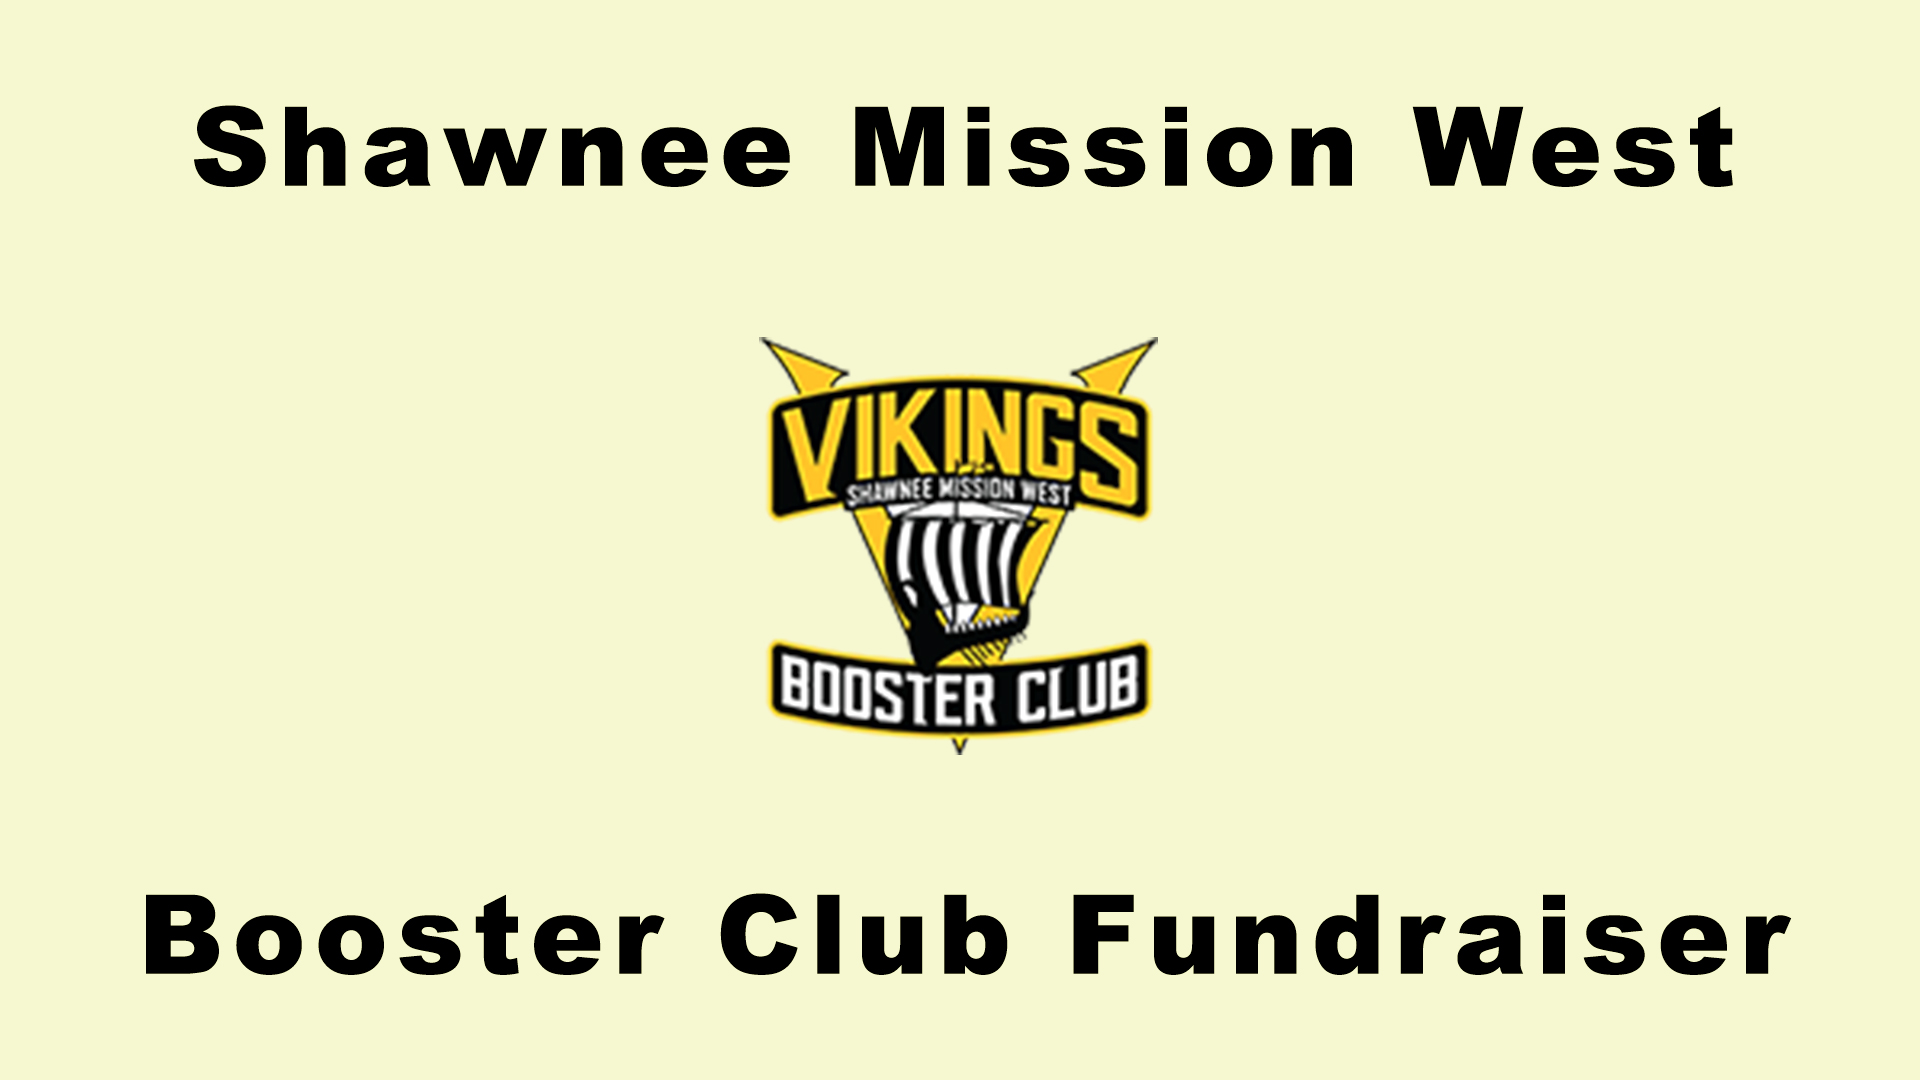 Shawnee Mission West Booster Club Fundraiser